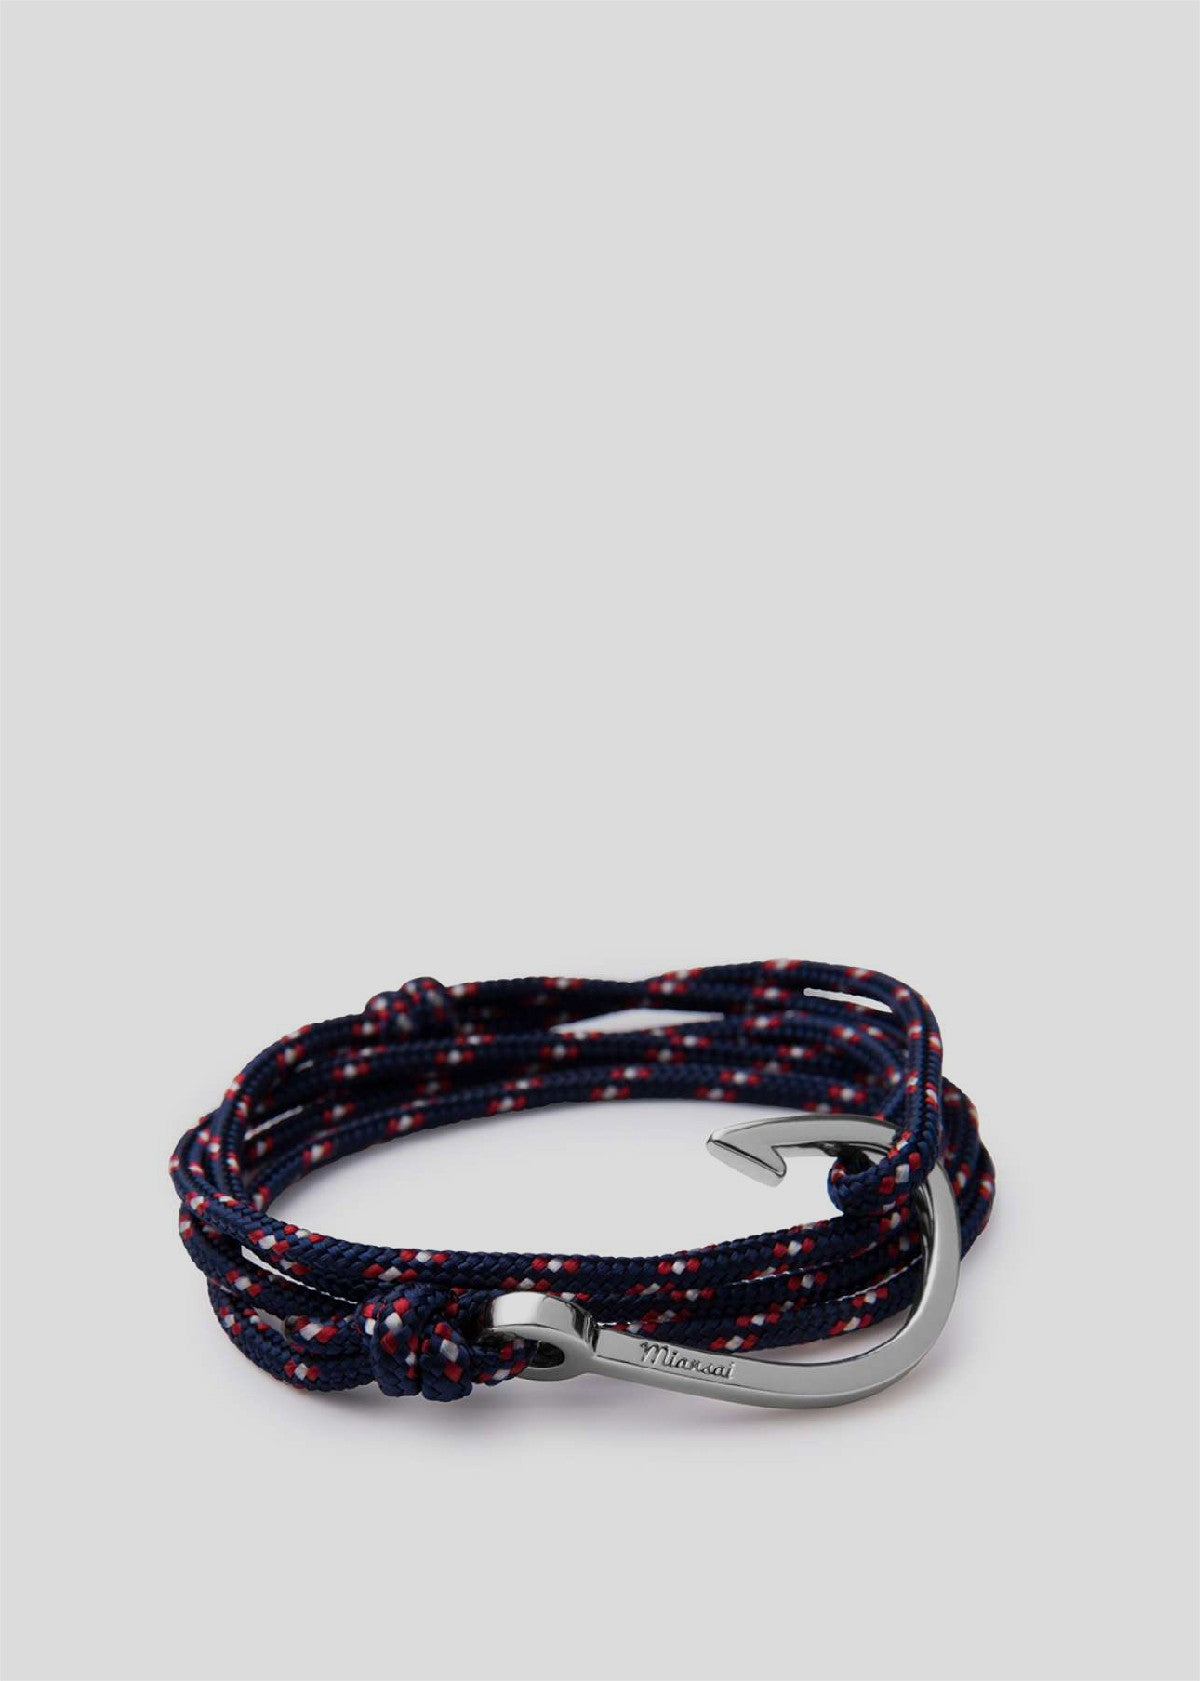 Hook on Rope Bracelet Silver/Navy